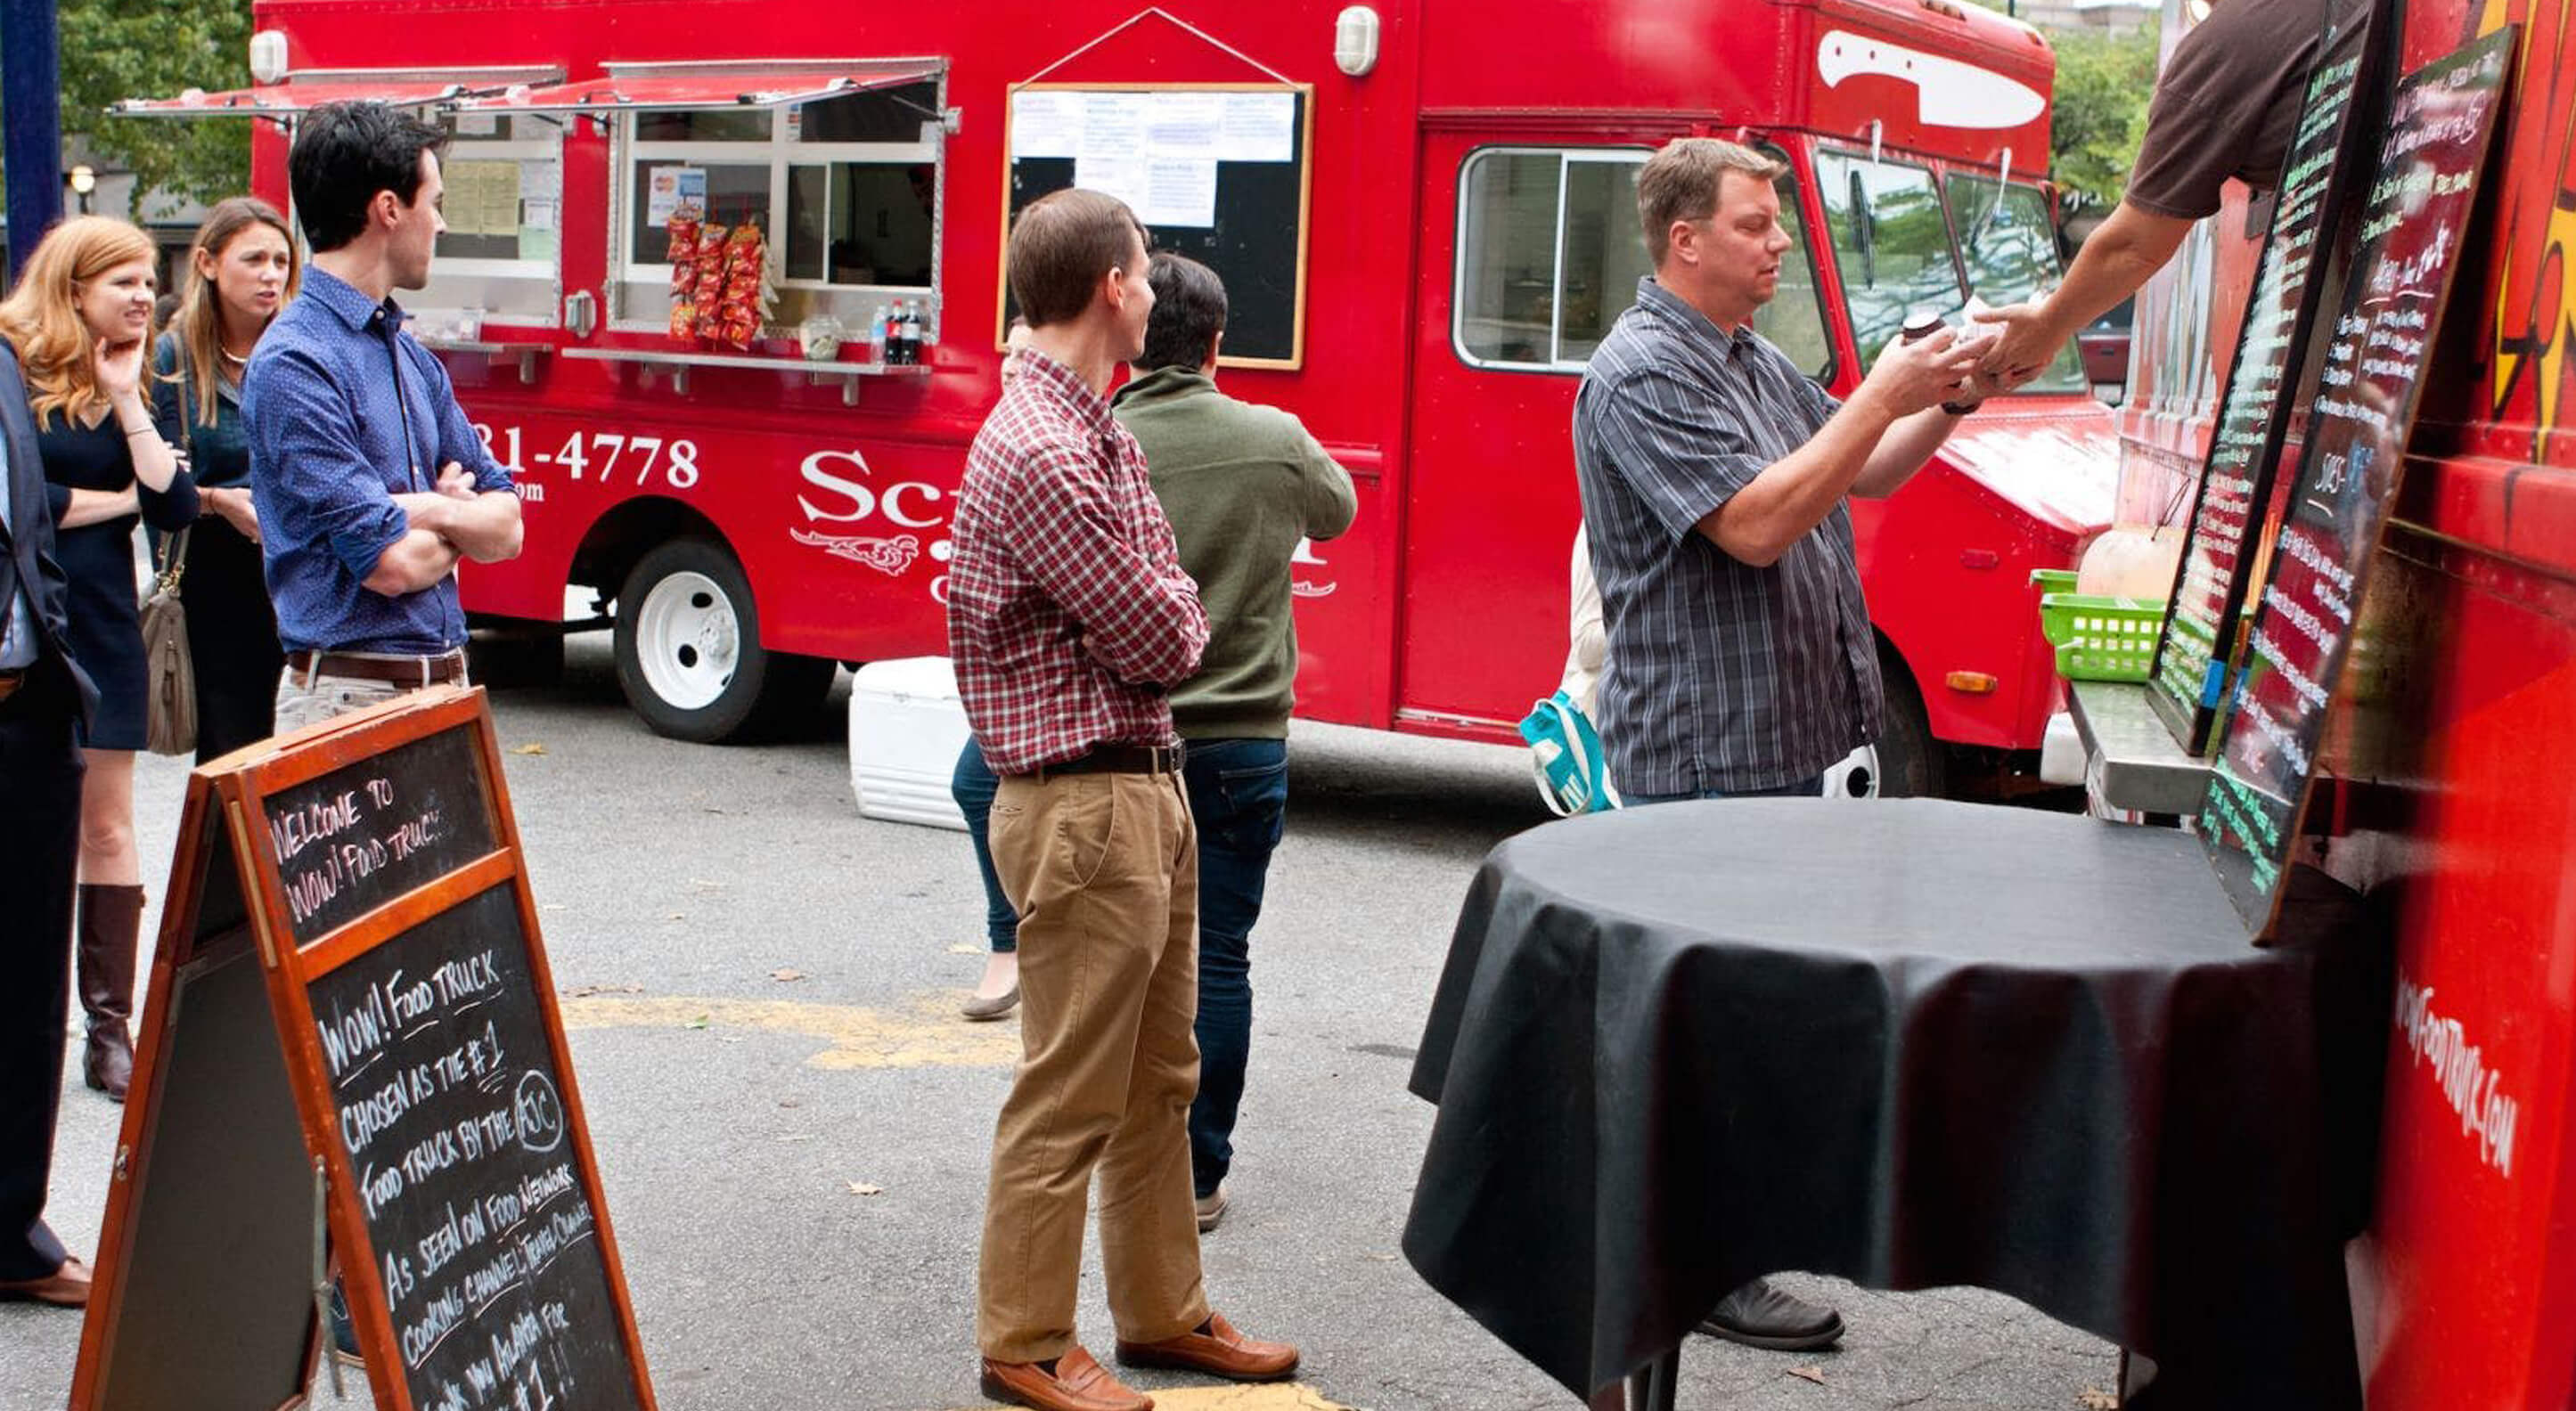 group of people lined up in front of a food truck